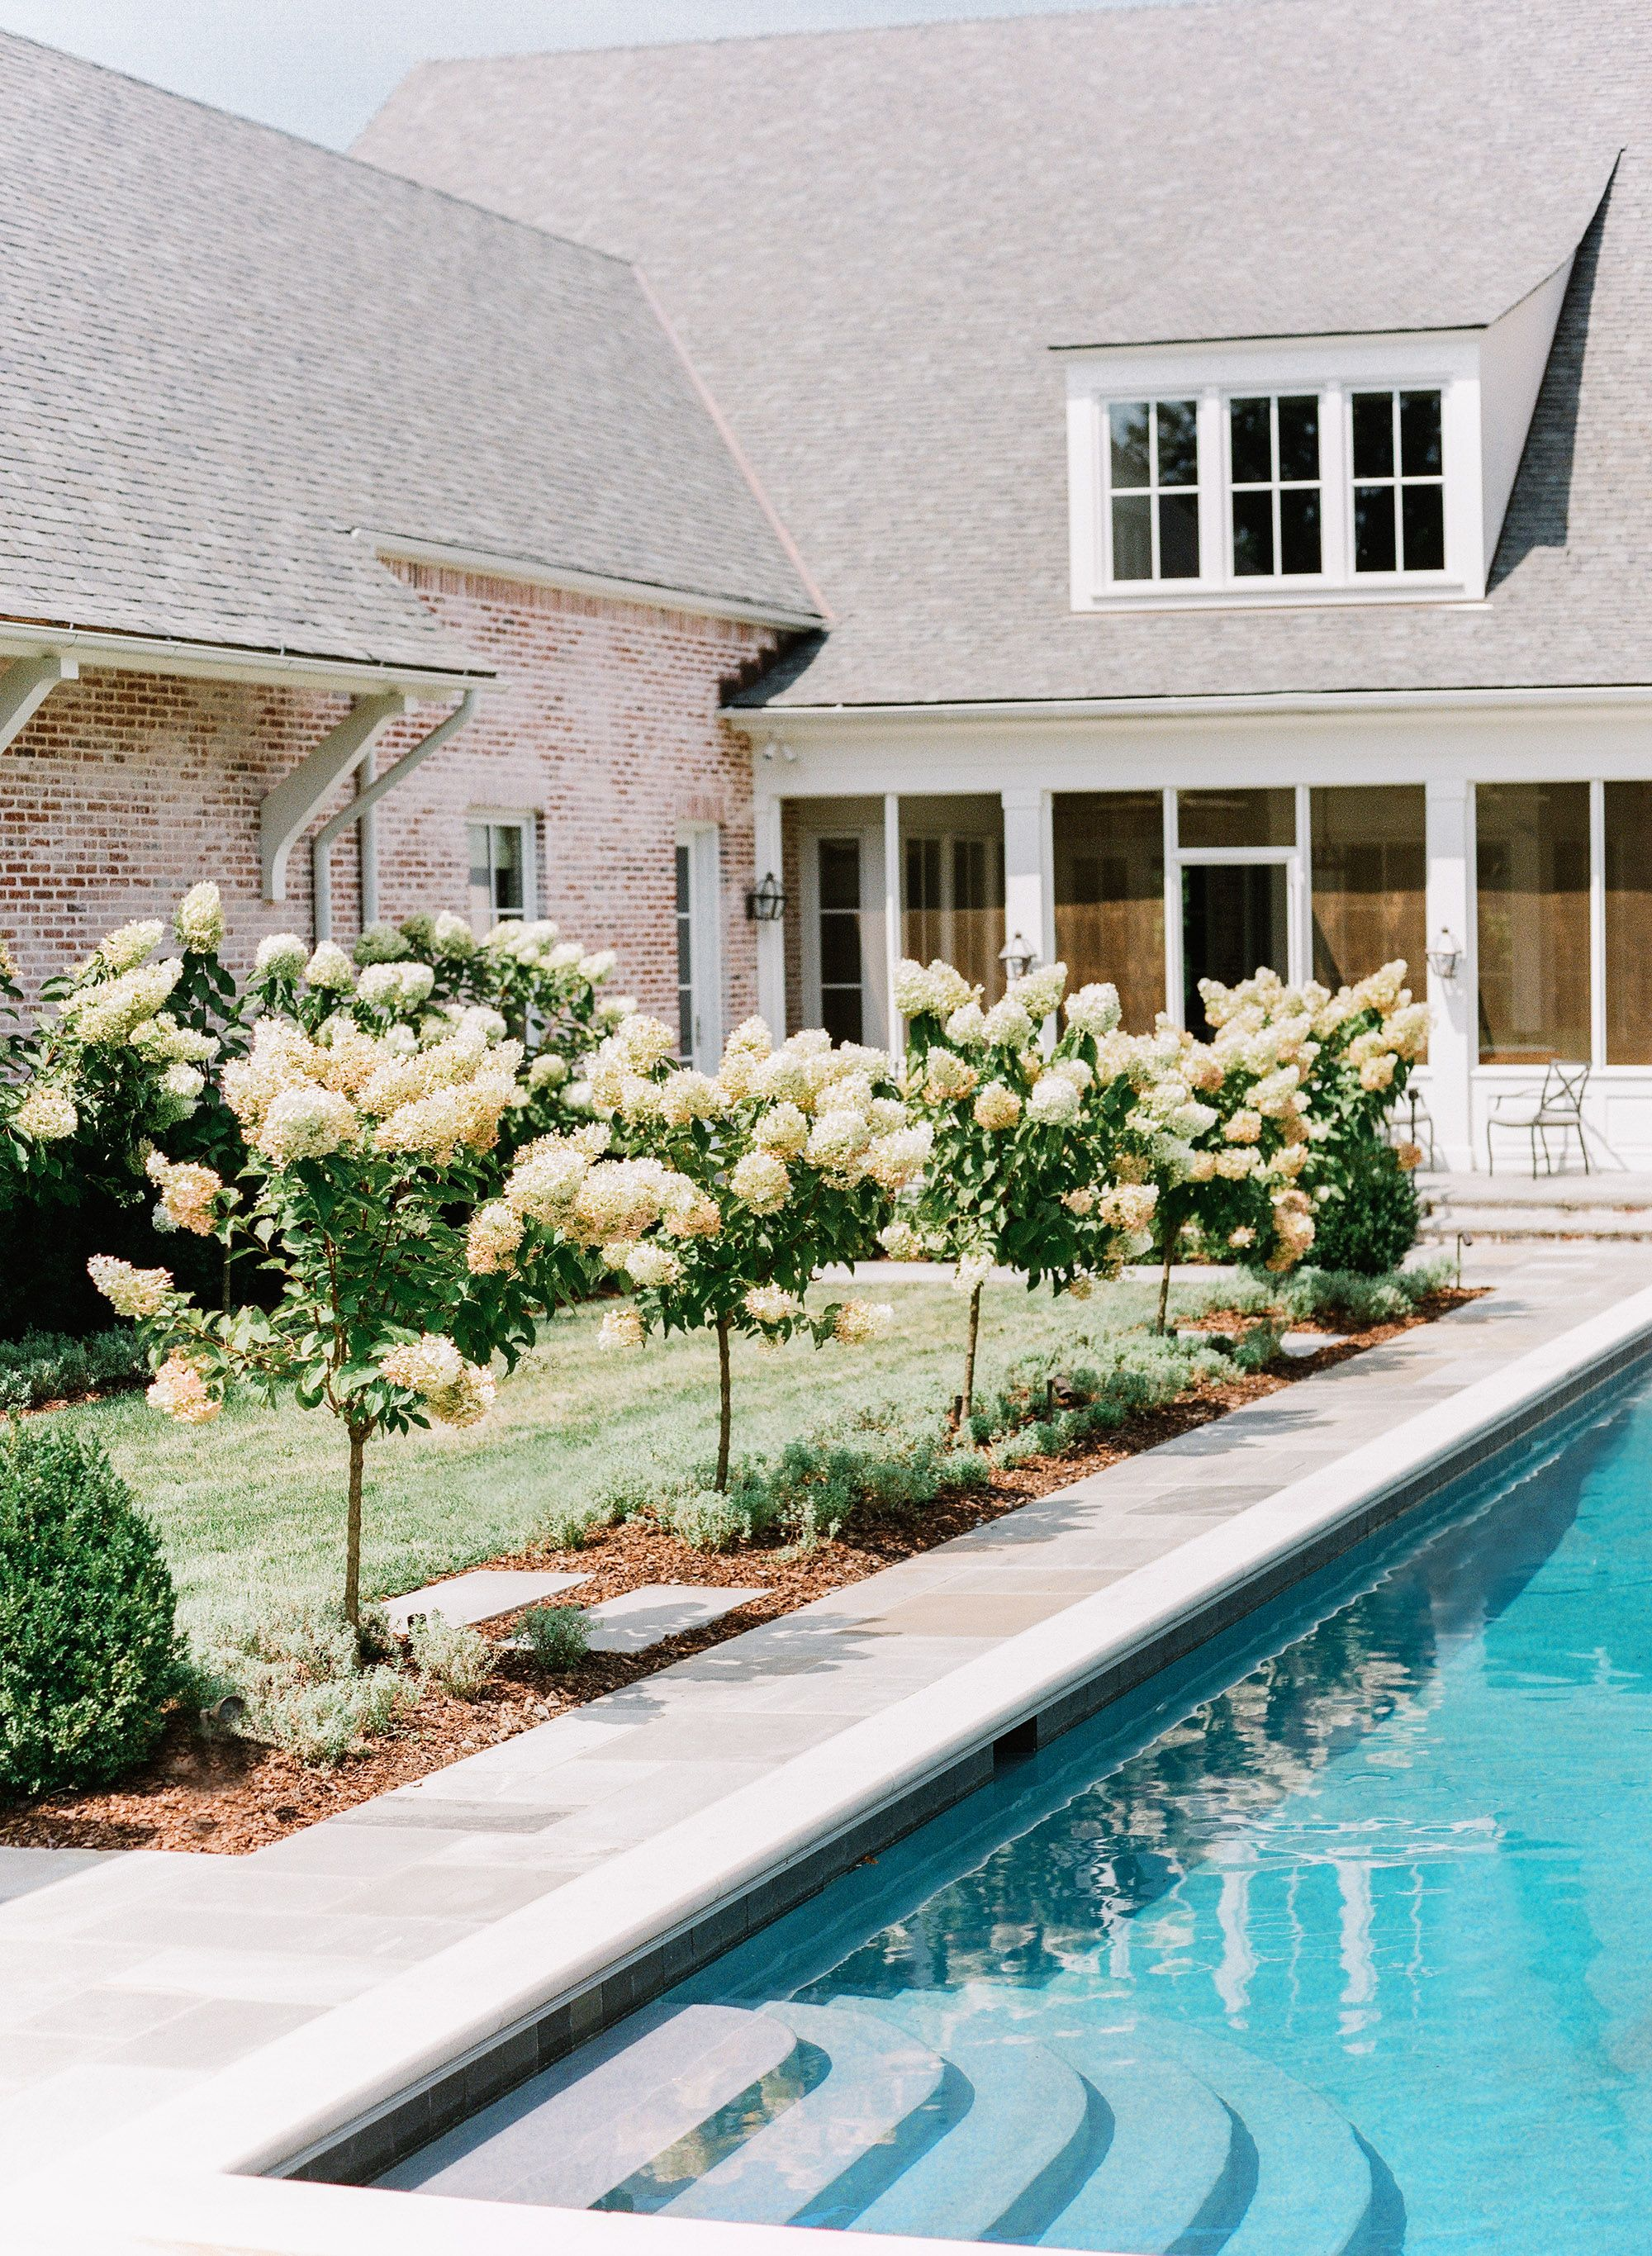 Landscape Architecture By Anne Daigh Nashville Tn Pool Design Pool Landscaping Backyard Pool Landscaping Landscape Architect